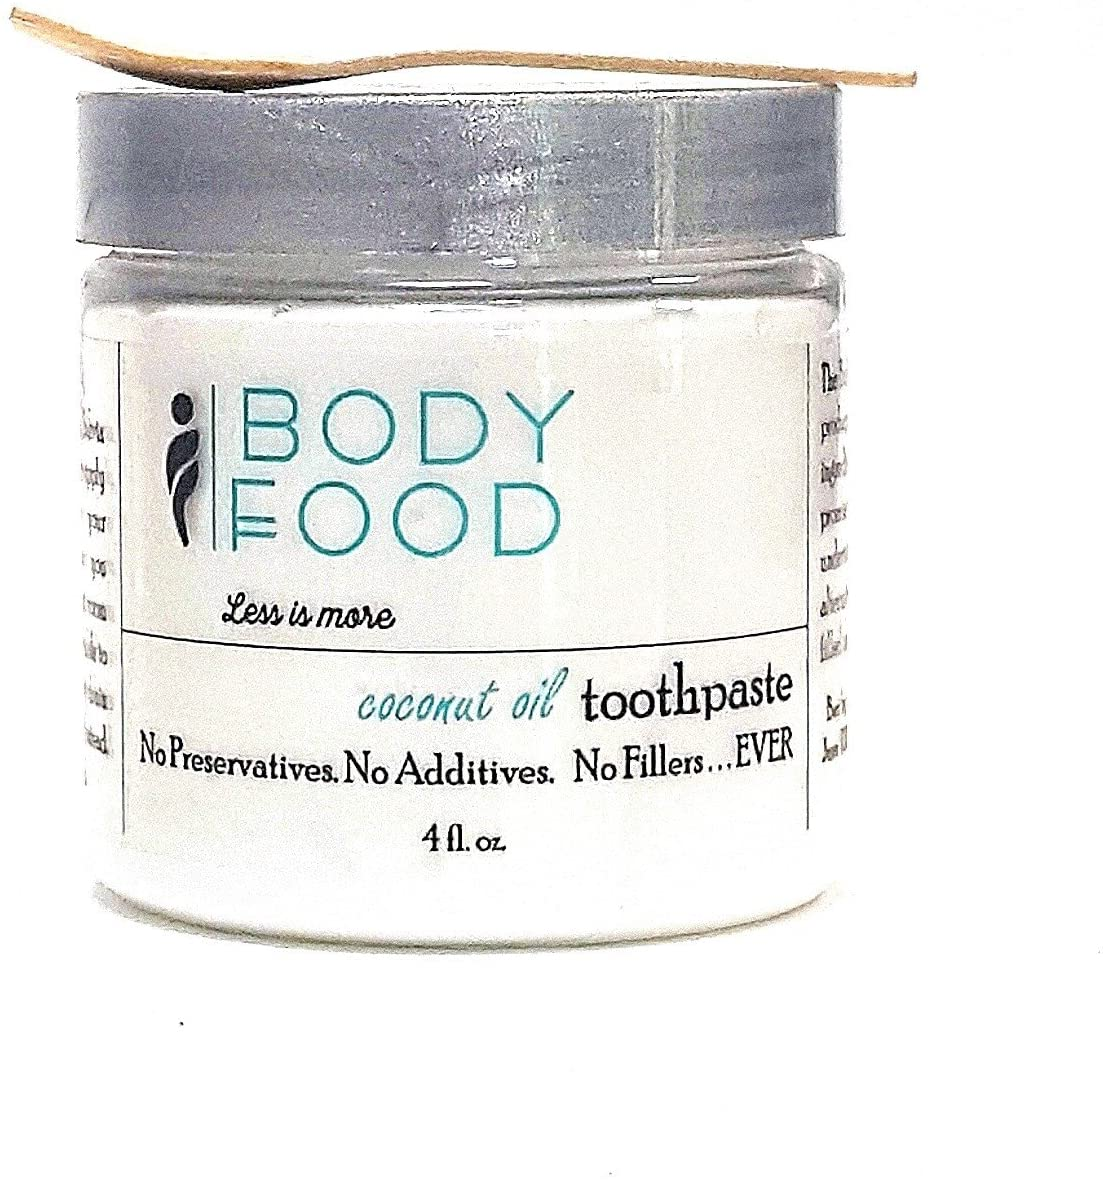 Body Food Whipped Toothpaste, Coconut Oil, 4 oz.